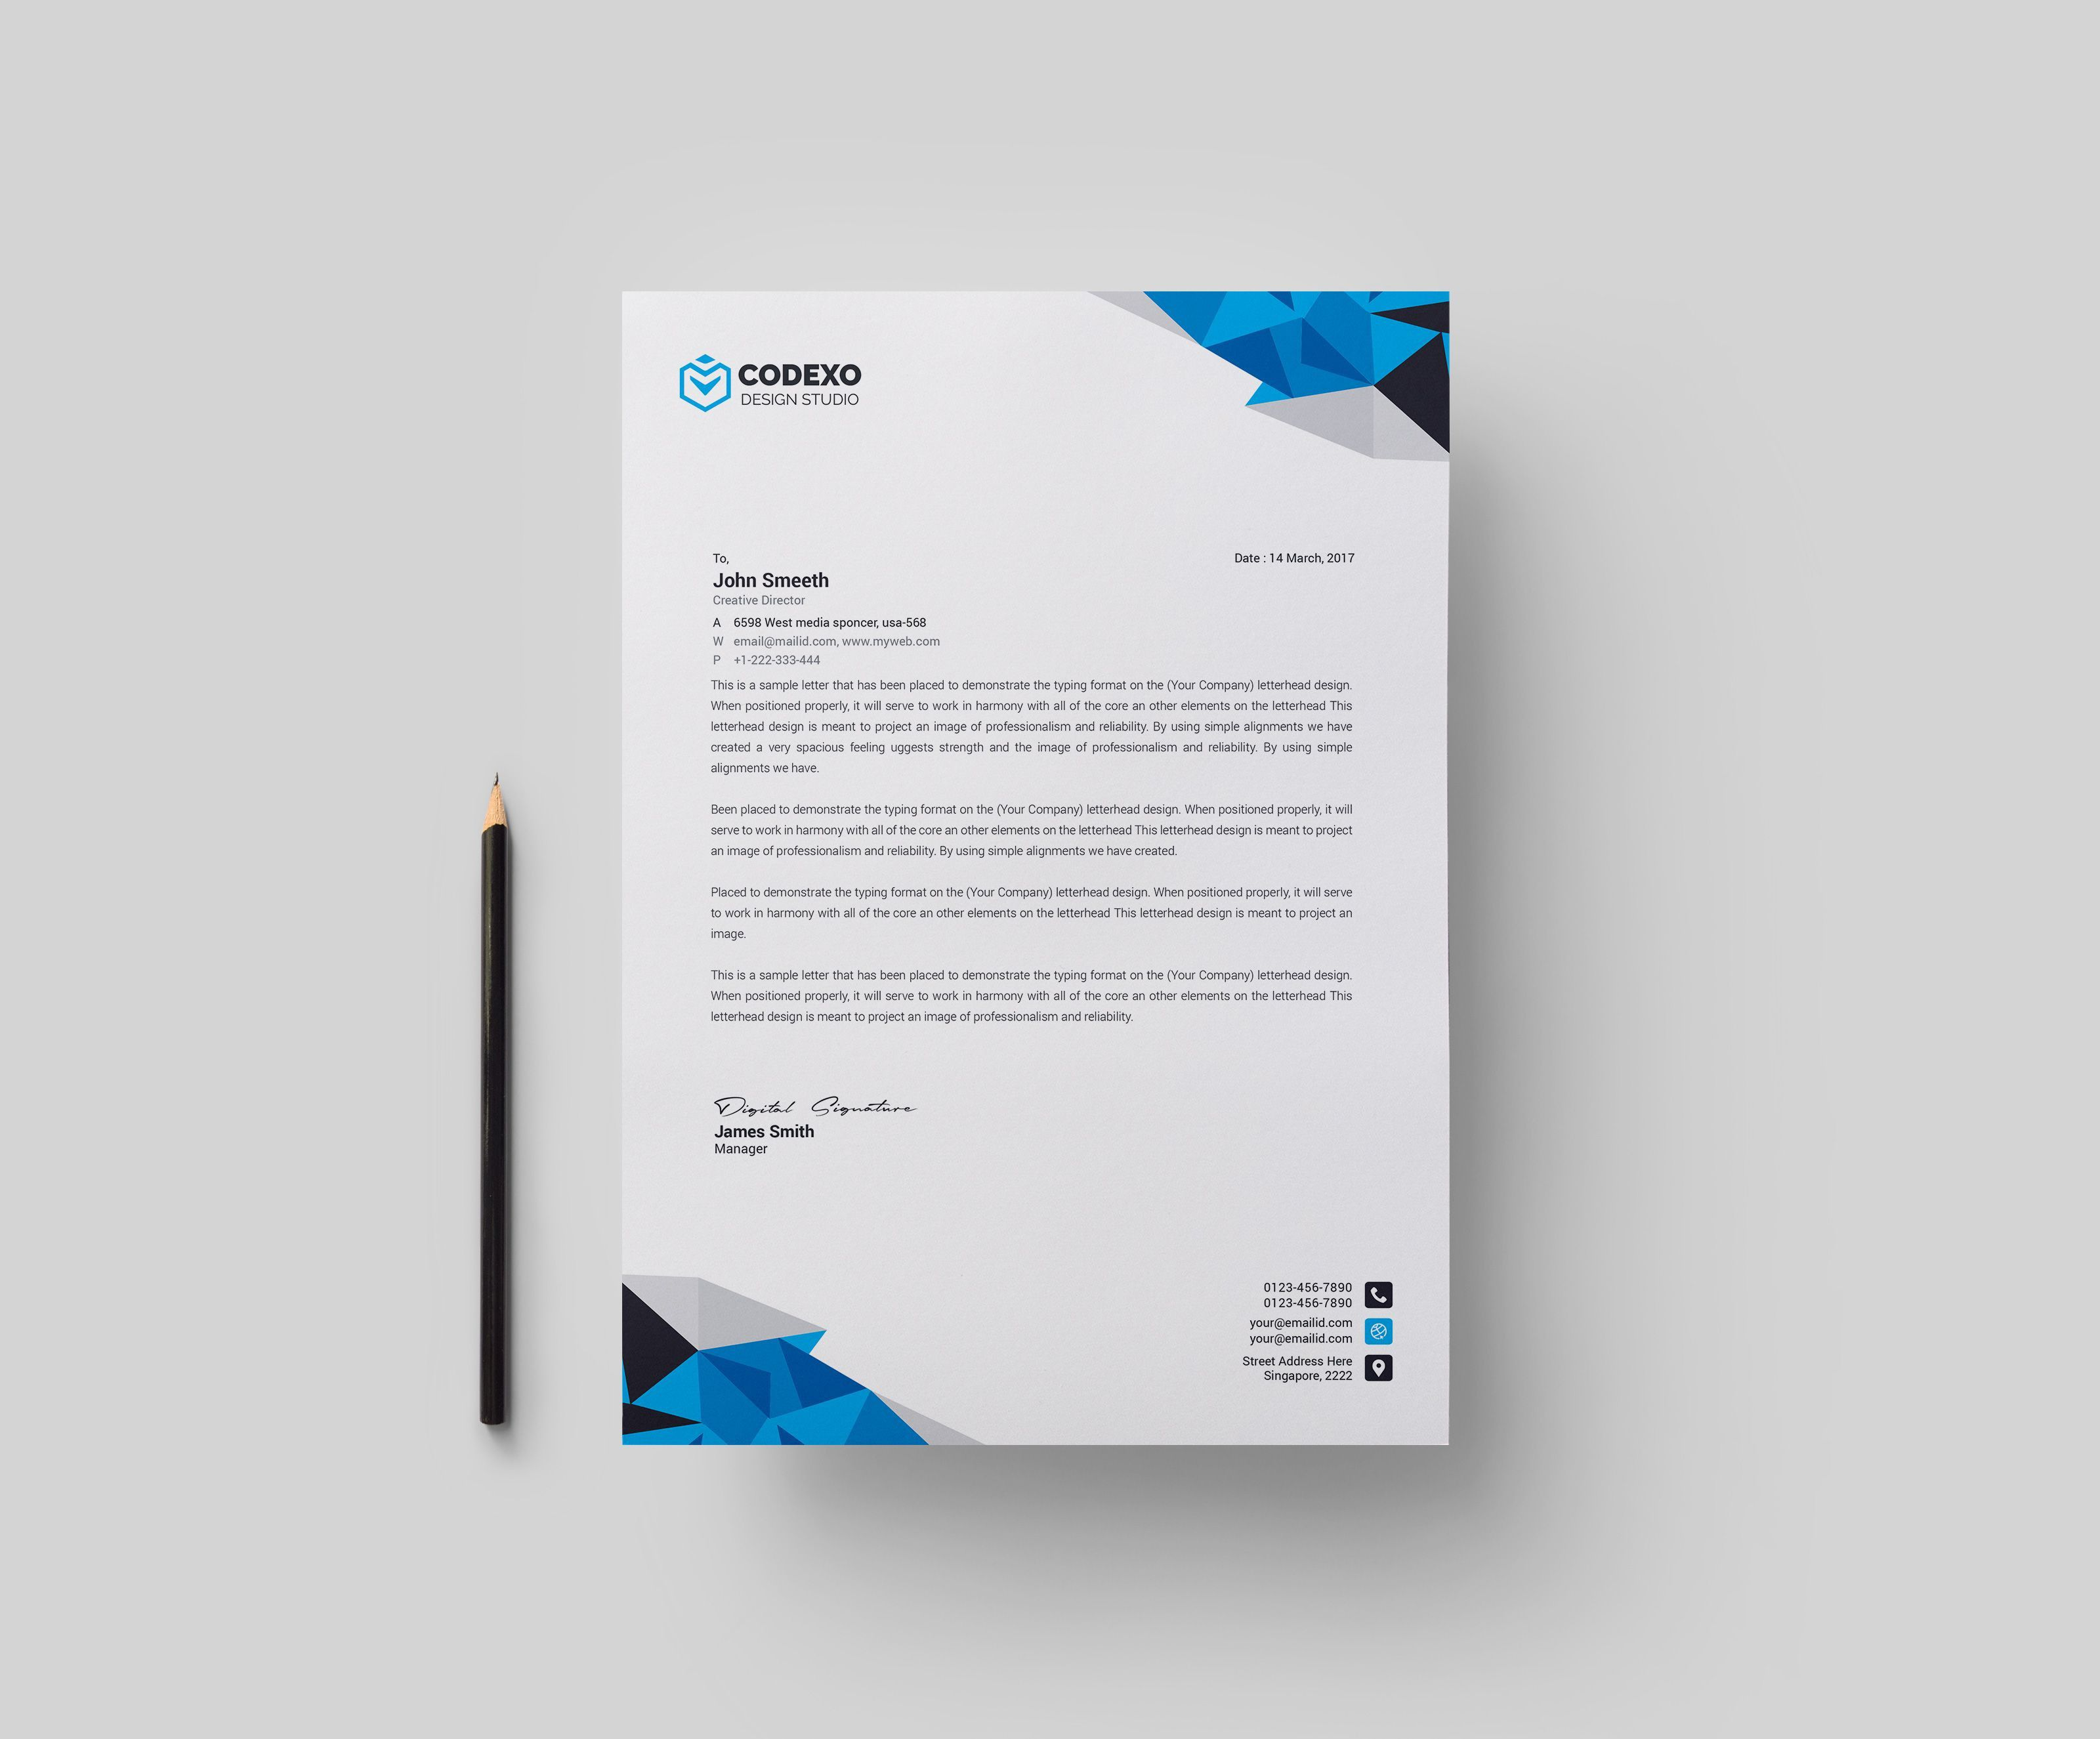 002 Impressive Letterhead Template Free Download Ai Picture  FileFull